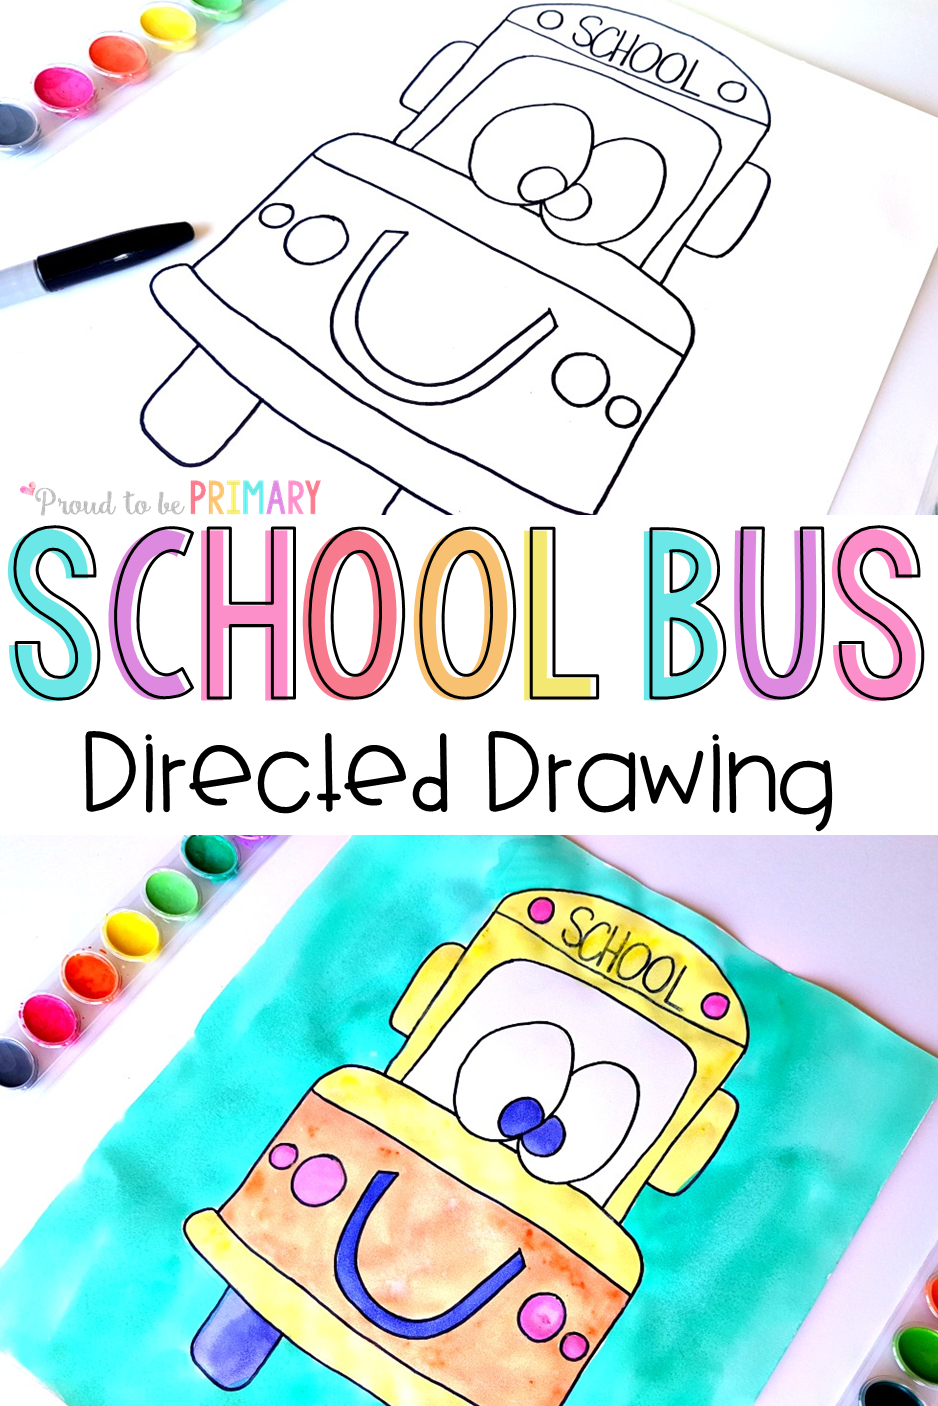 Back To School Bus Directed Drawing Art Activity For Kids It Includes Easy Diy Instructions To Download For Free To Use In Your Classroom Today